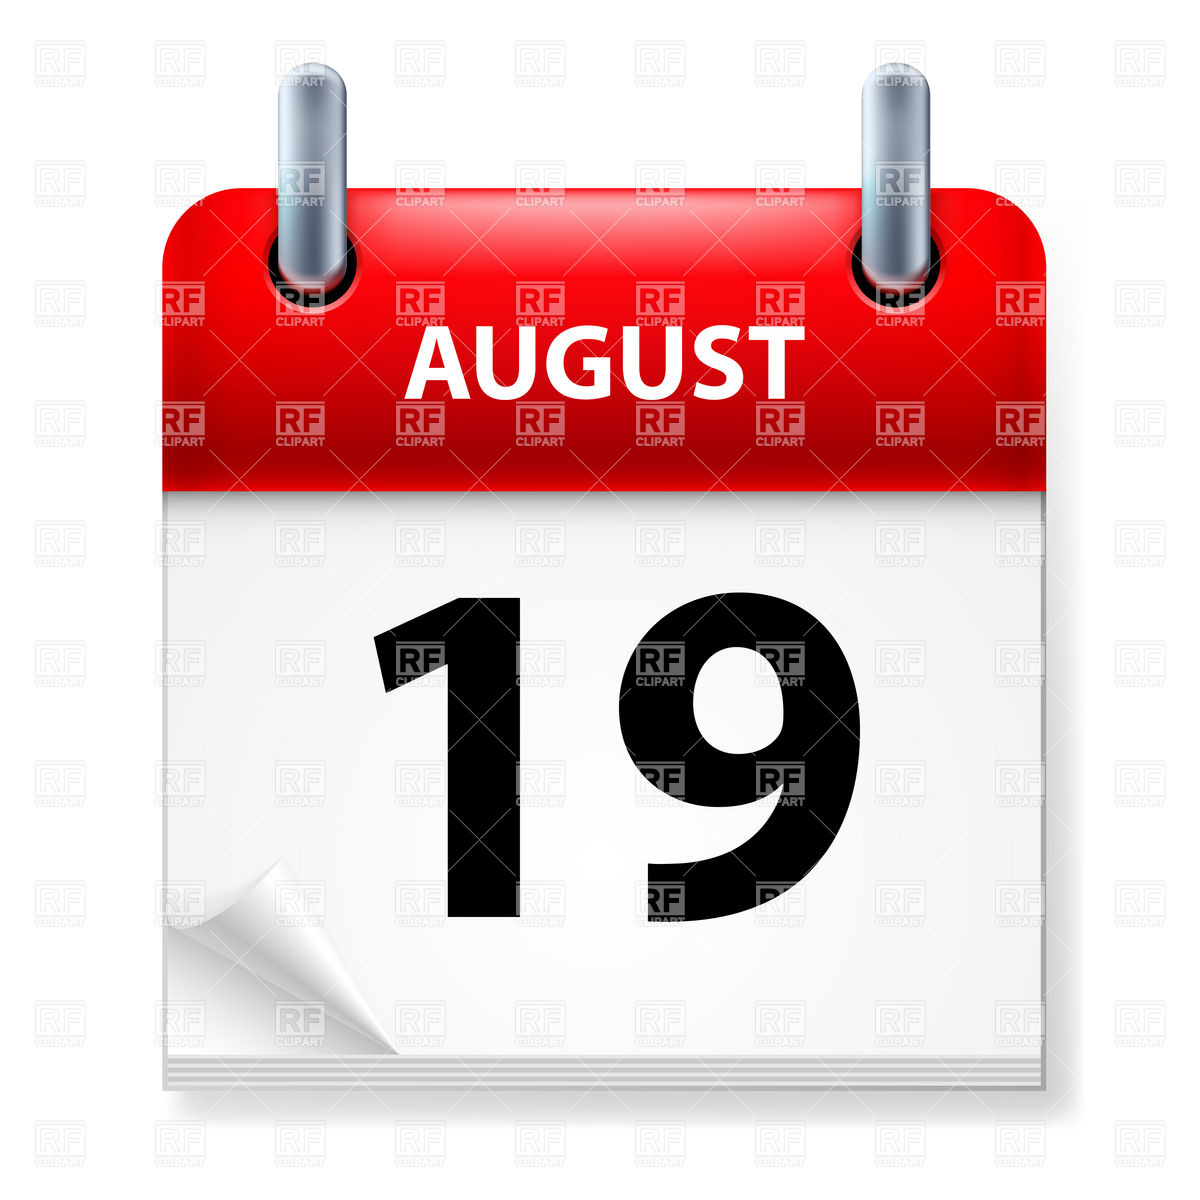 Nineteenth in August Calendar icon on white background